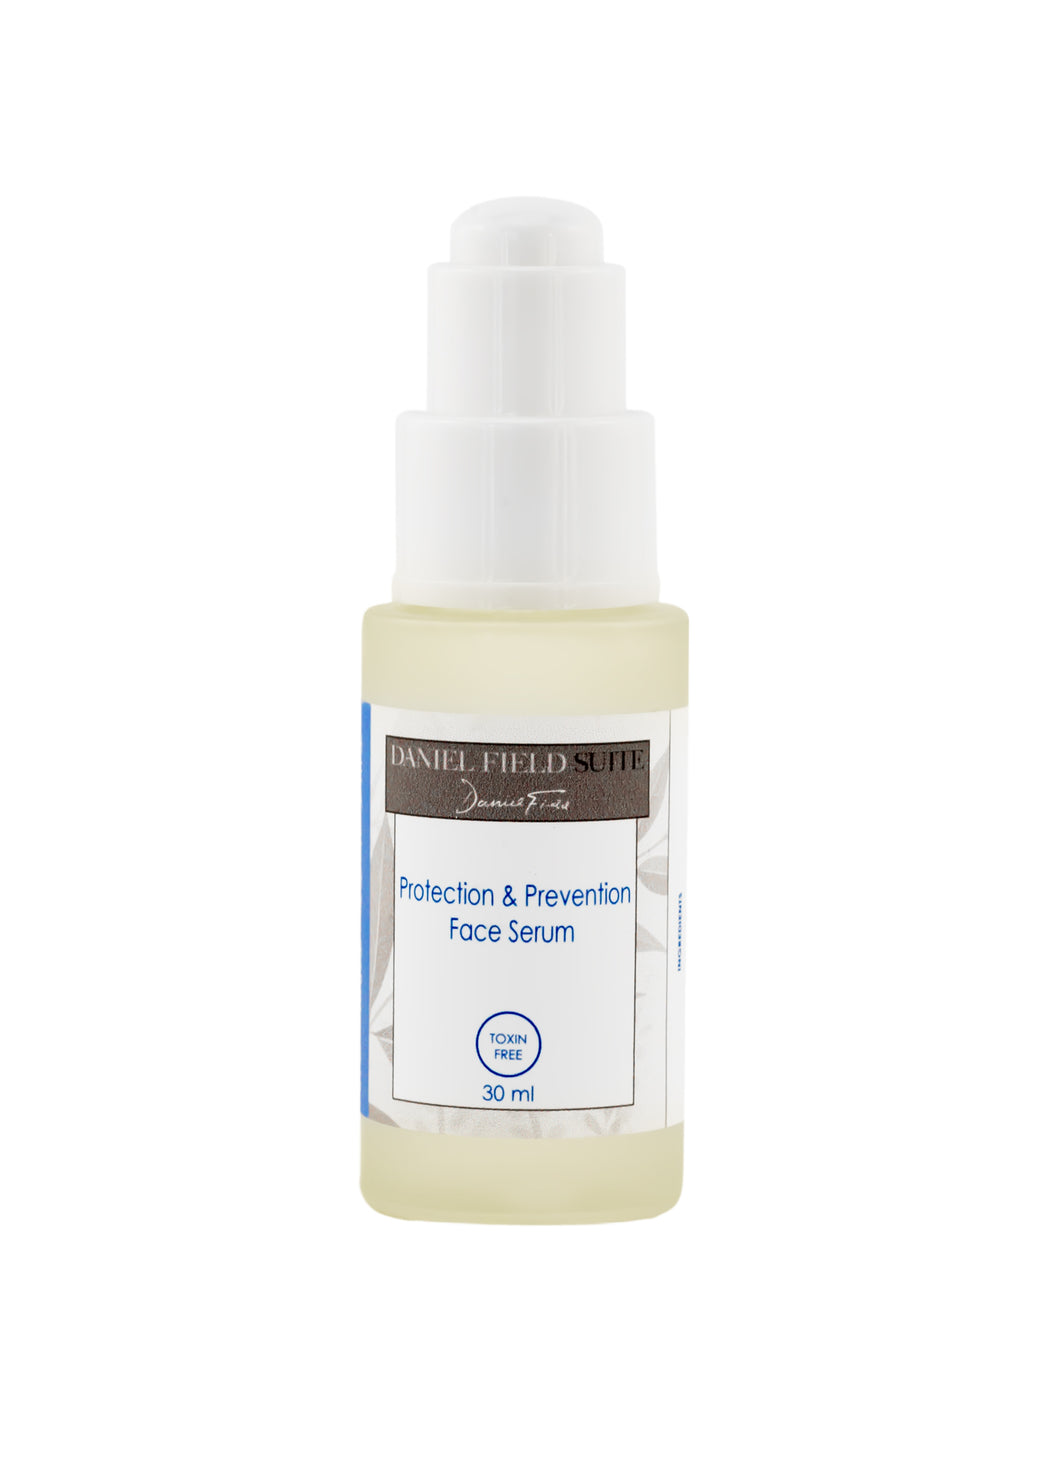 Protection and Prevention Face Serum